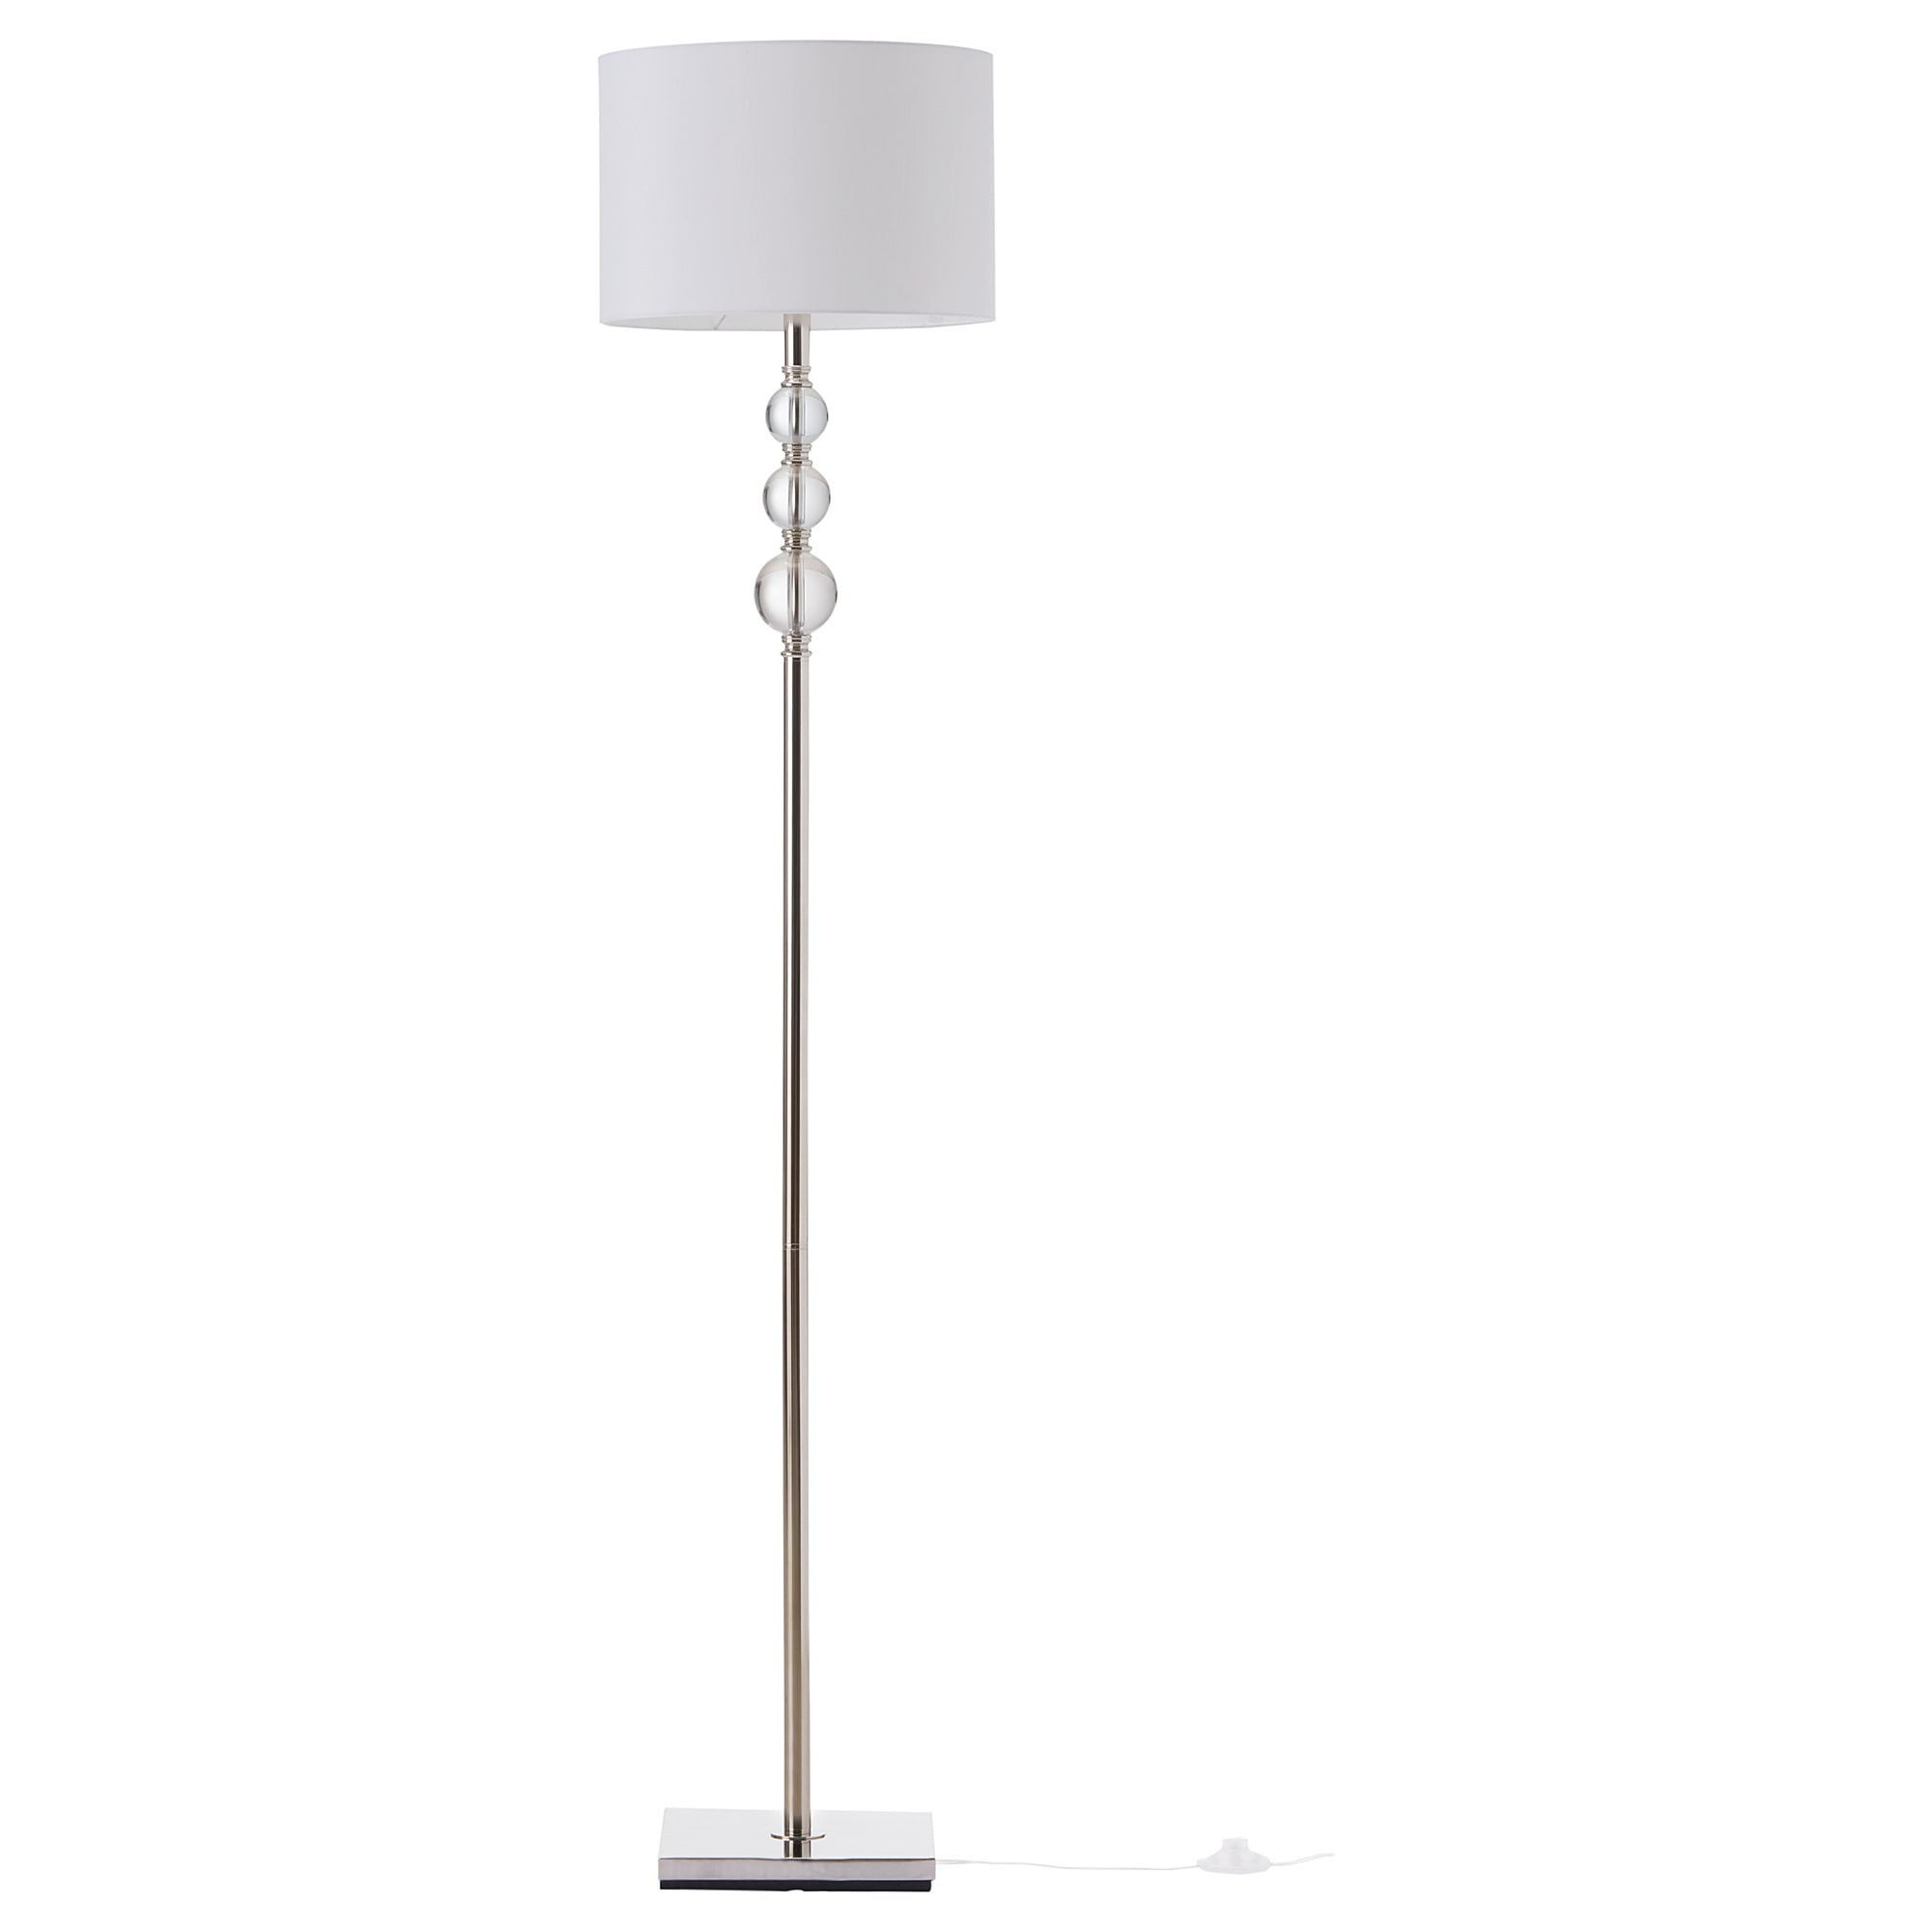 Floor Lamps Modern & Contemporary Floor Lamps IKEA